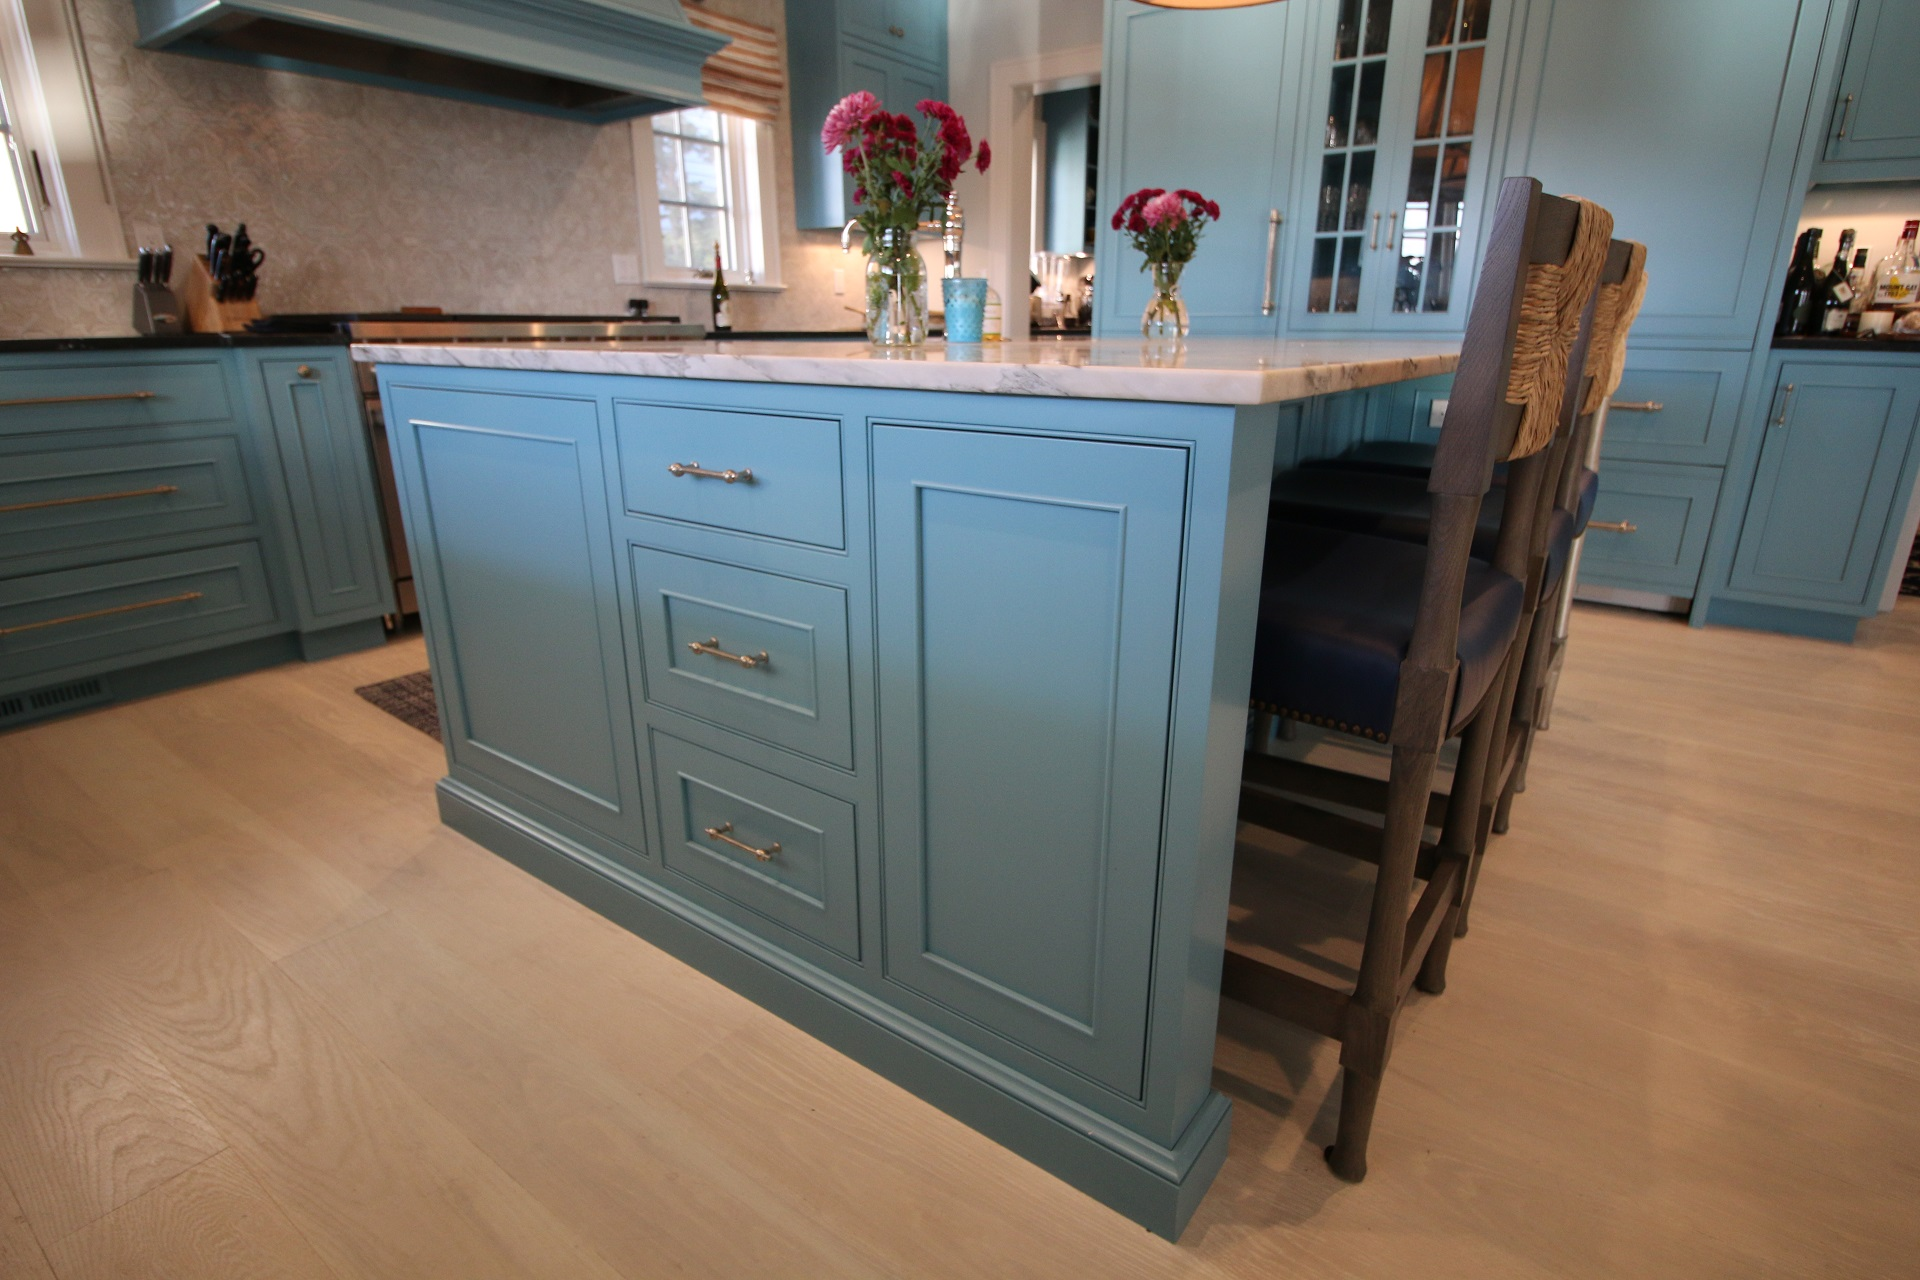 Ideal Kitchens - New Jersey Custom Kitchens and Cabinets